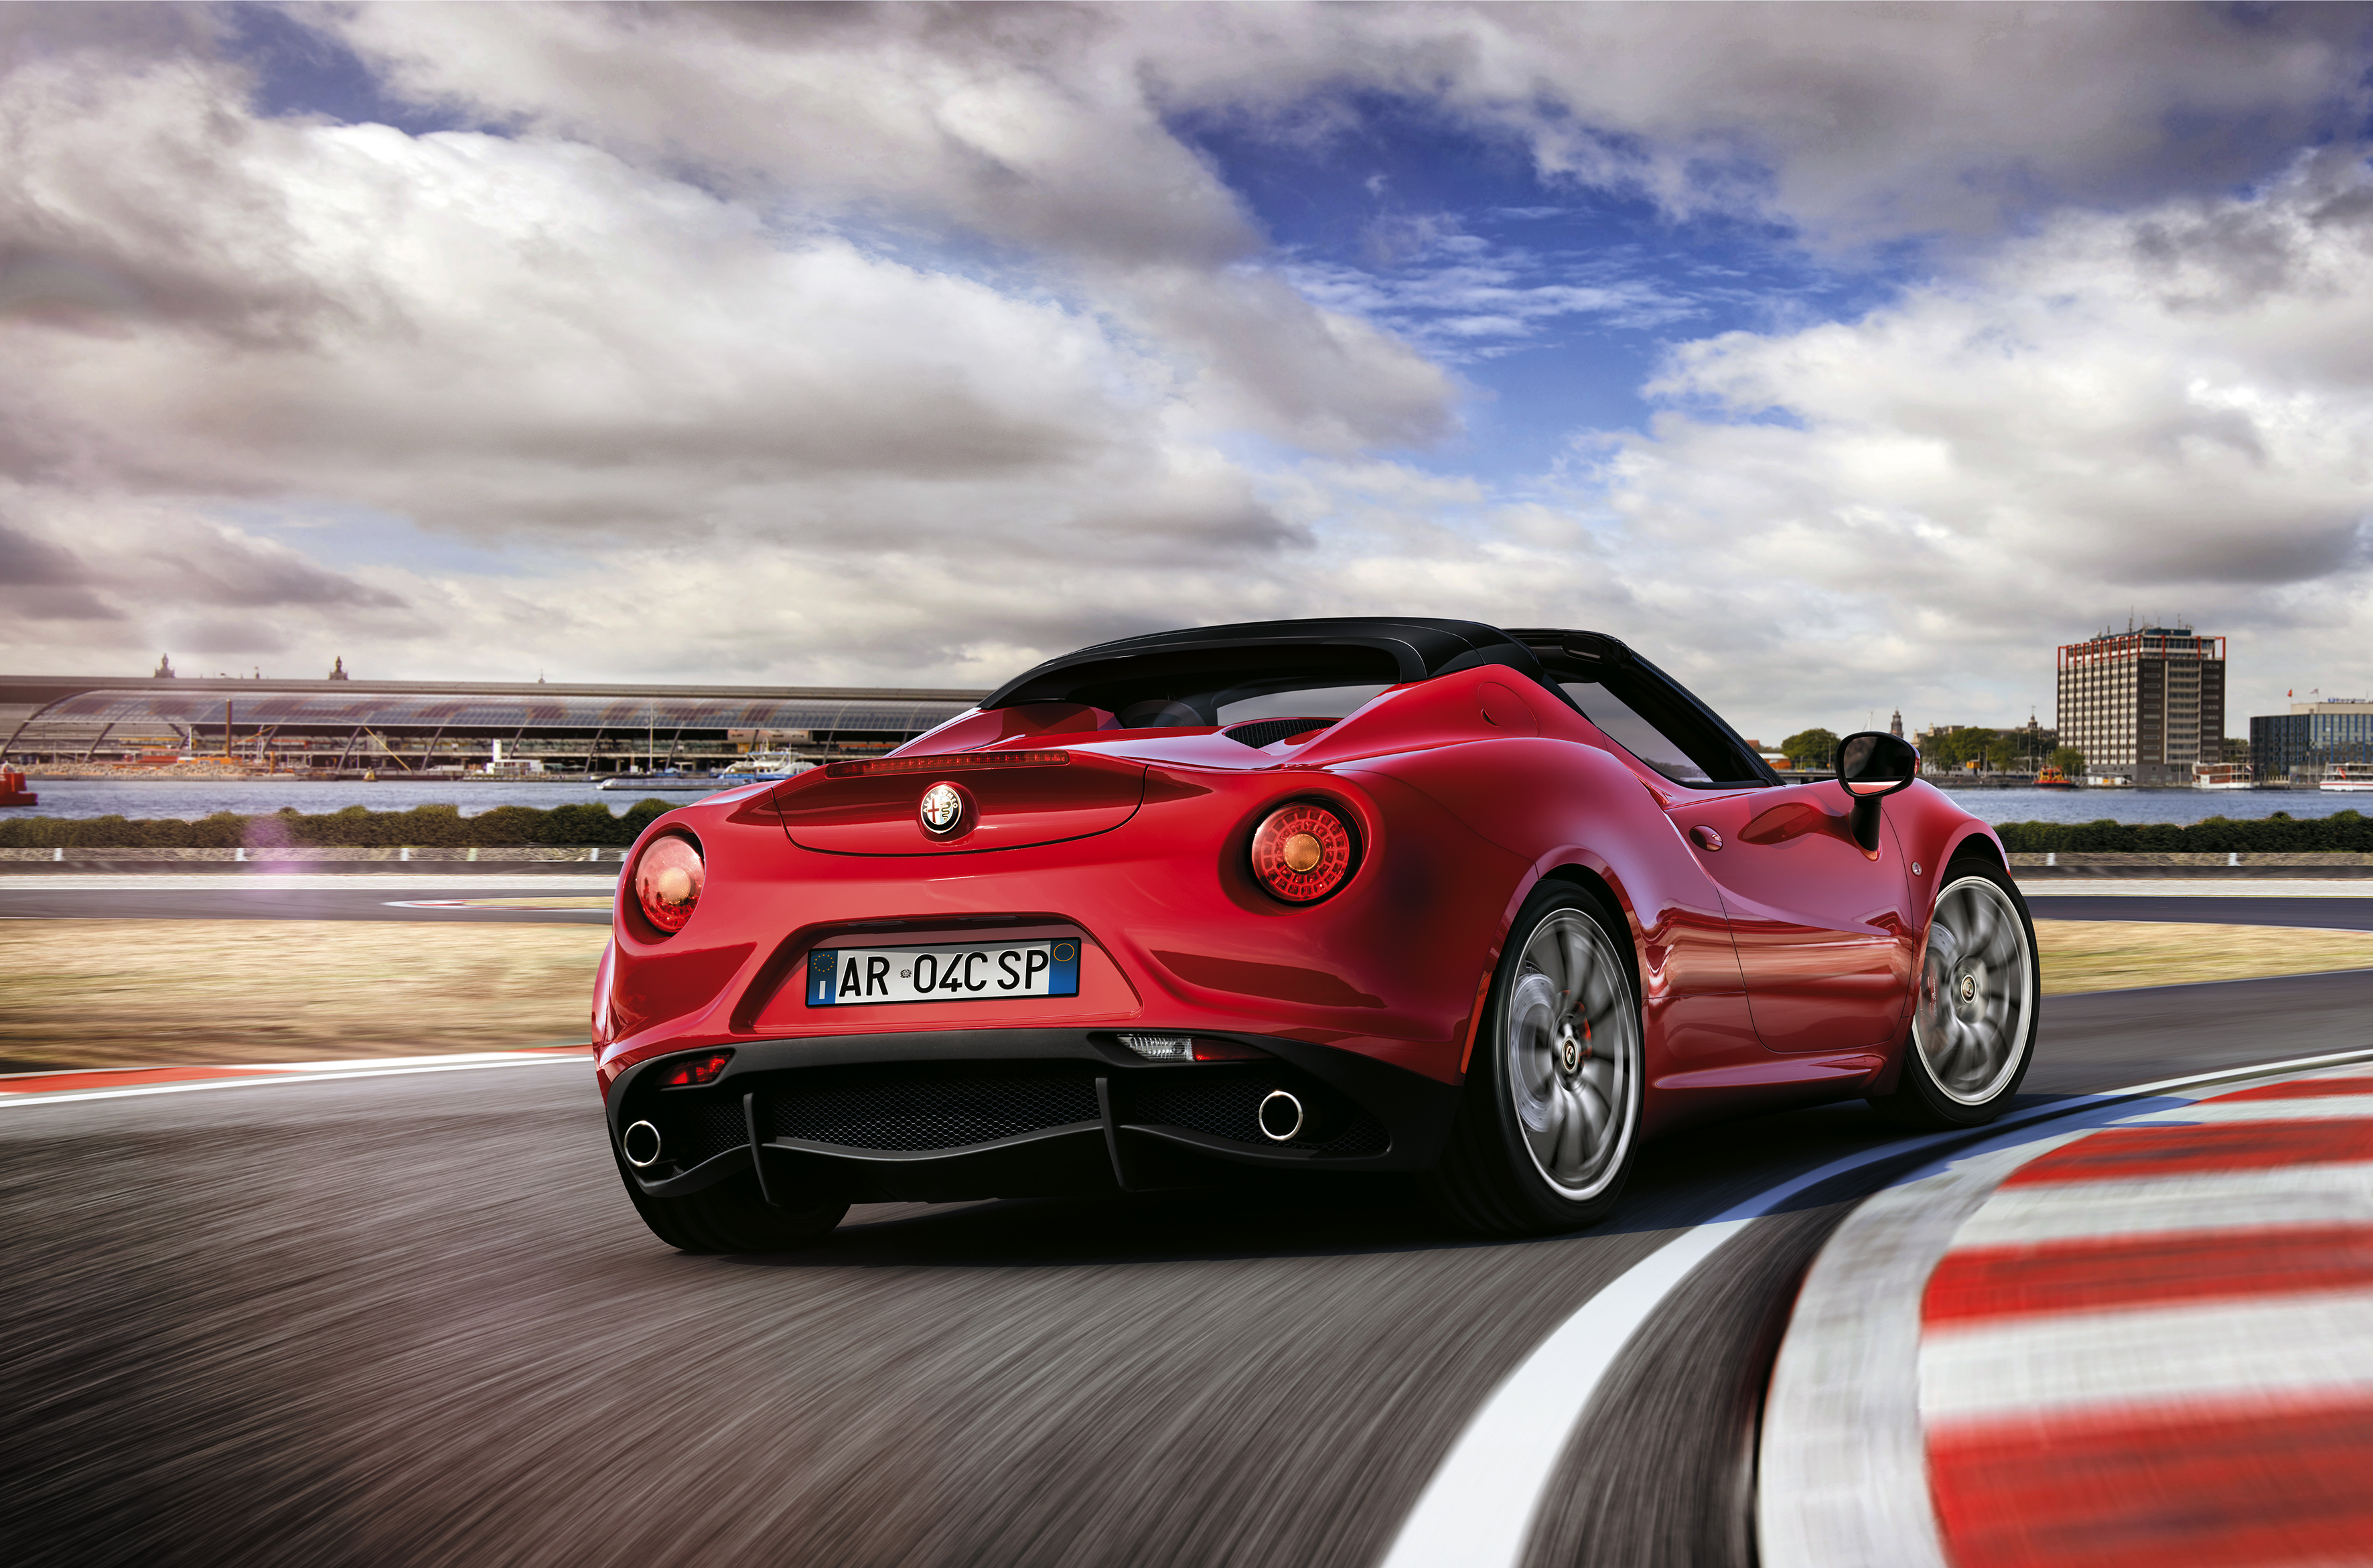 alfa romeo 4c spider makes european debut at geneva motor show motrface. Black Bedroom Furniture Sets. Home Design Ideas